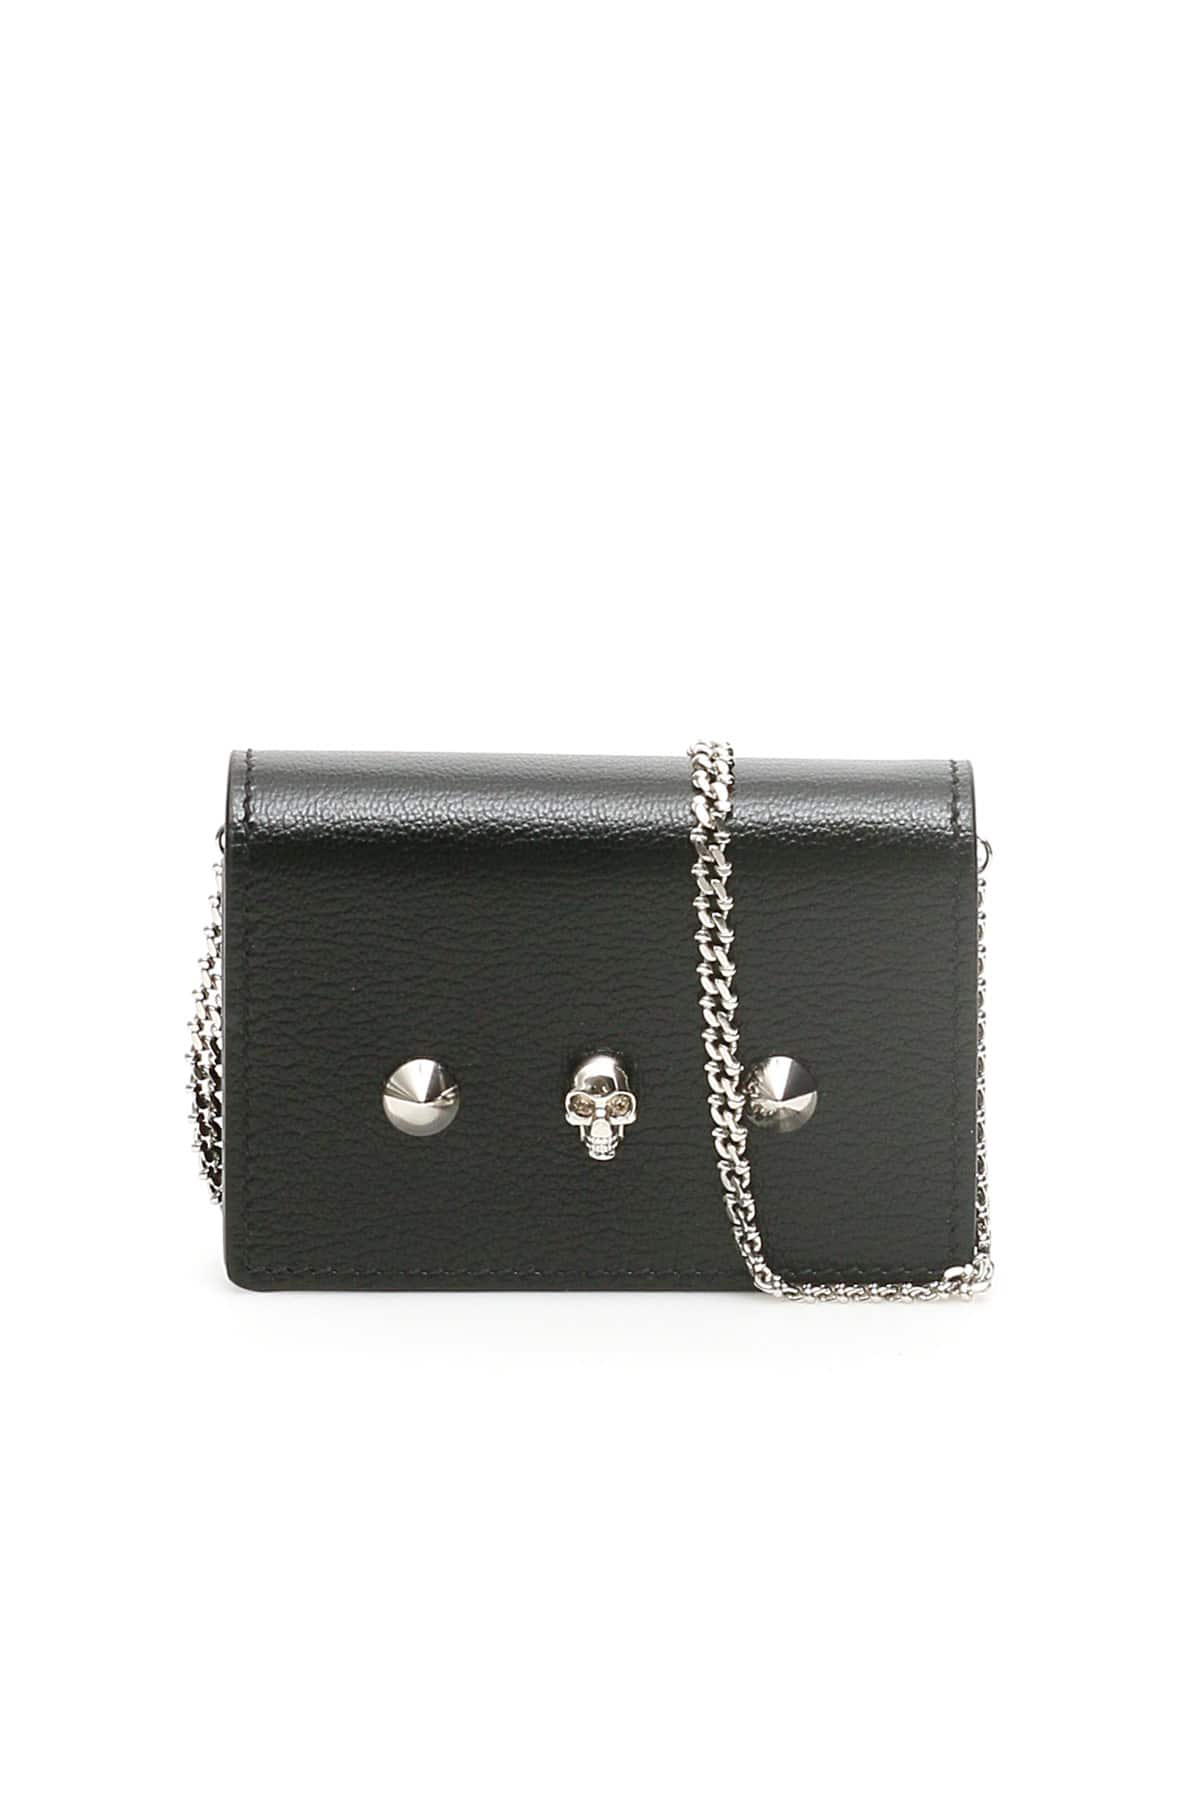 ALEXANDER MCQUEEN CARD HOLDER WITH SKULL AND CHAIN OS Black Leather